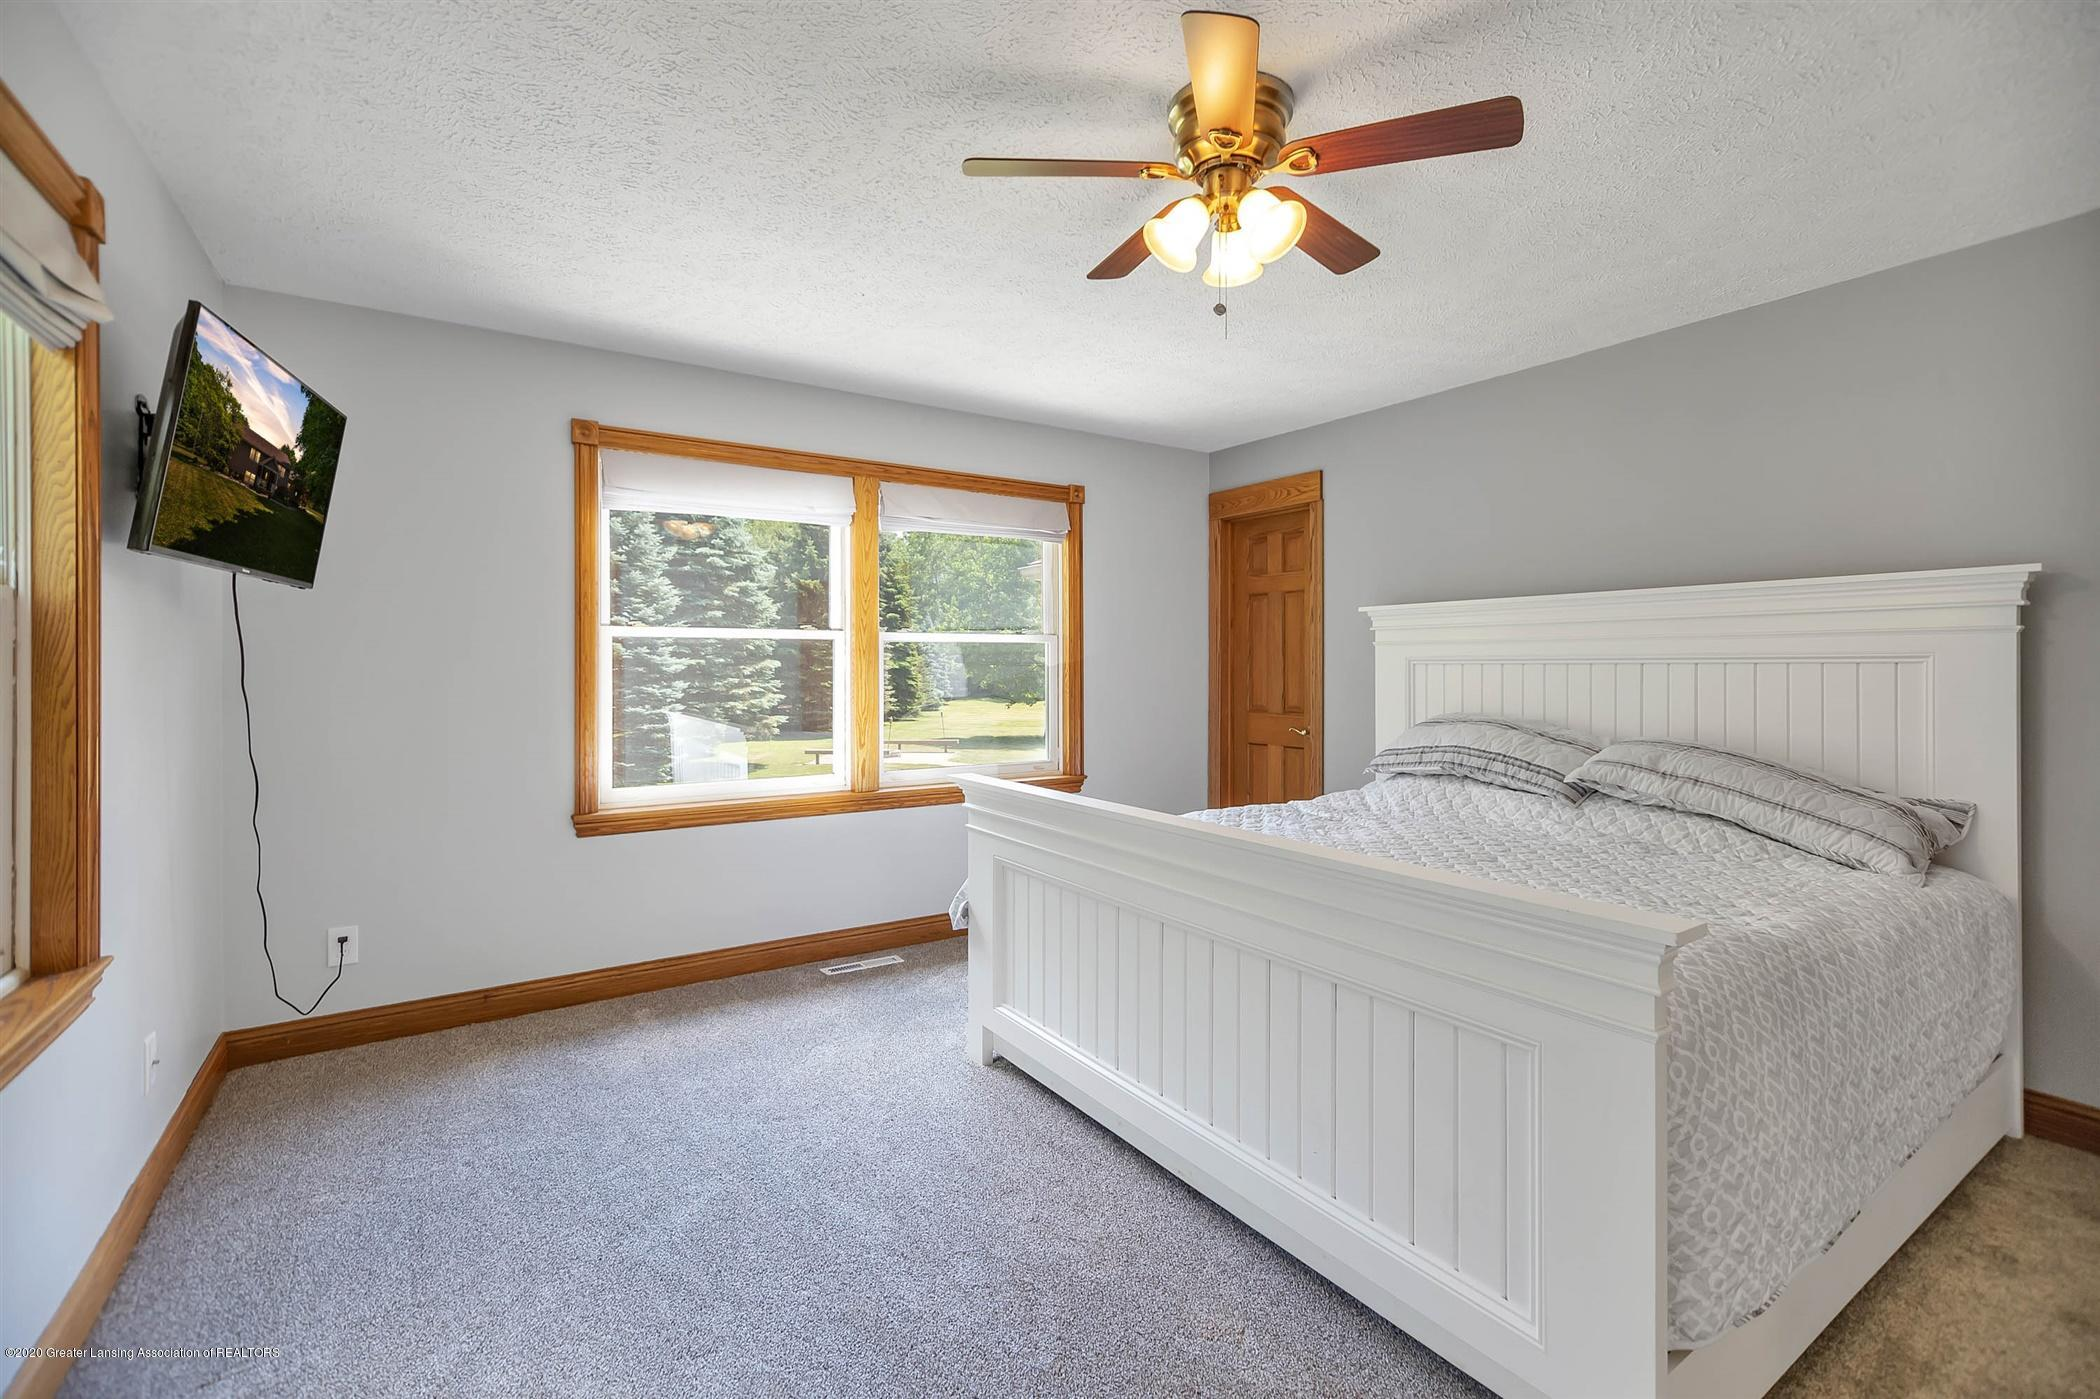 4445 W Britton Rd - UPPER LEVEL Master Bedroom - 15